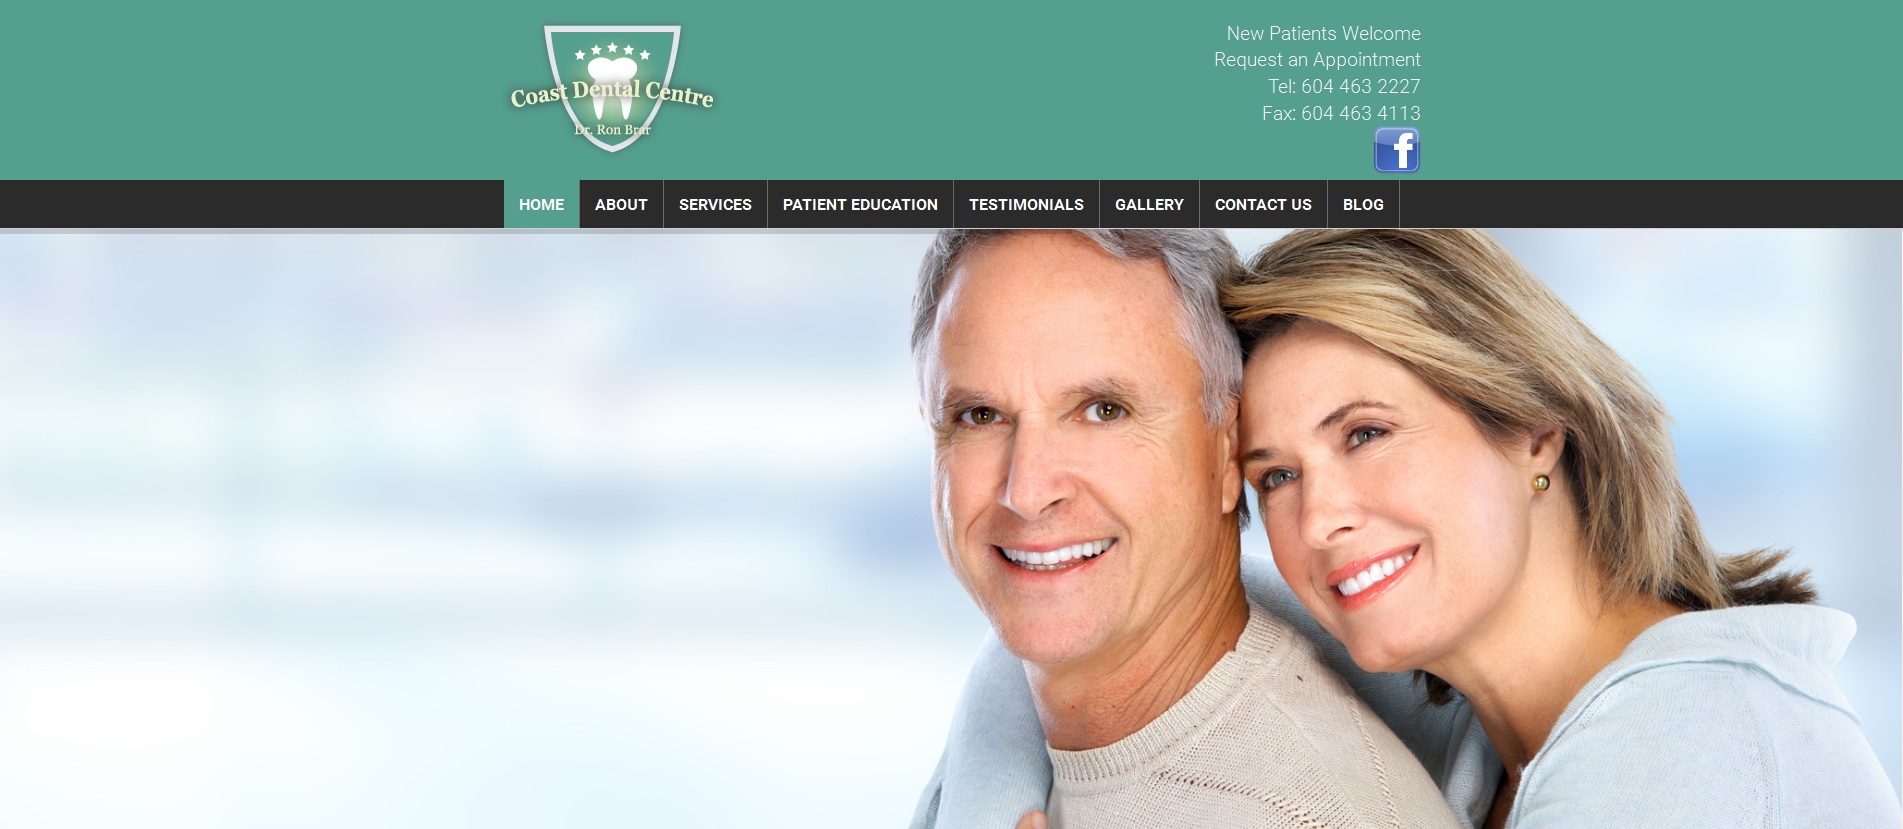 Coast Dental Centre | vancouver dental website